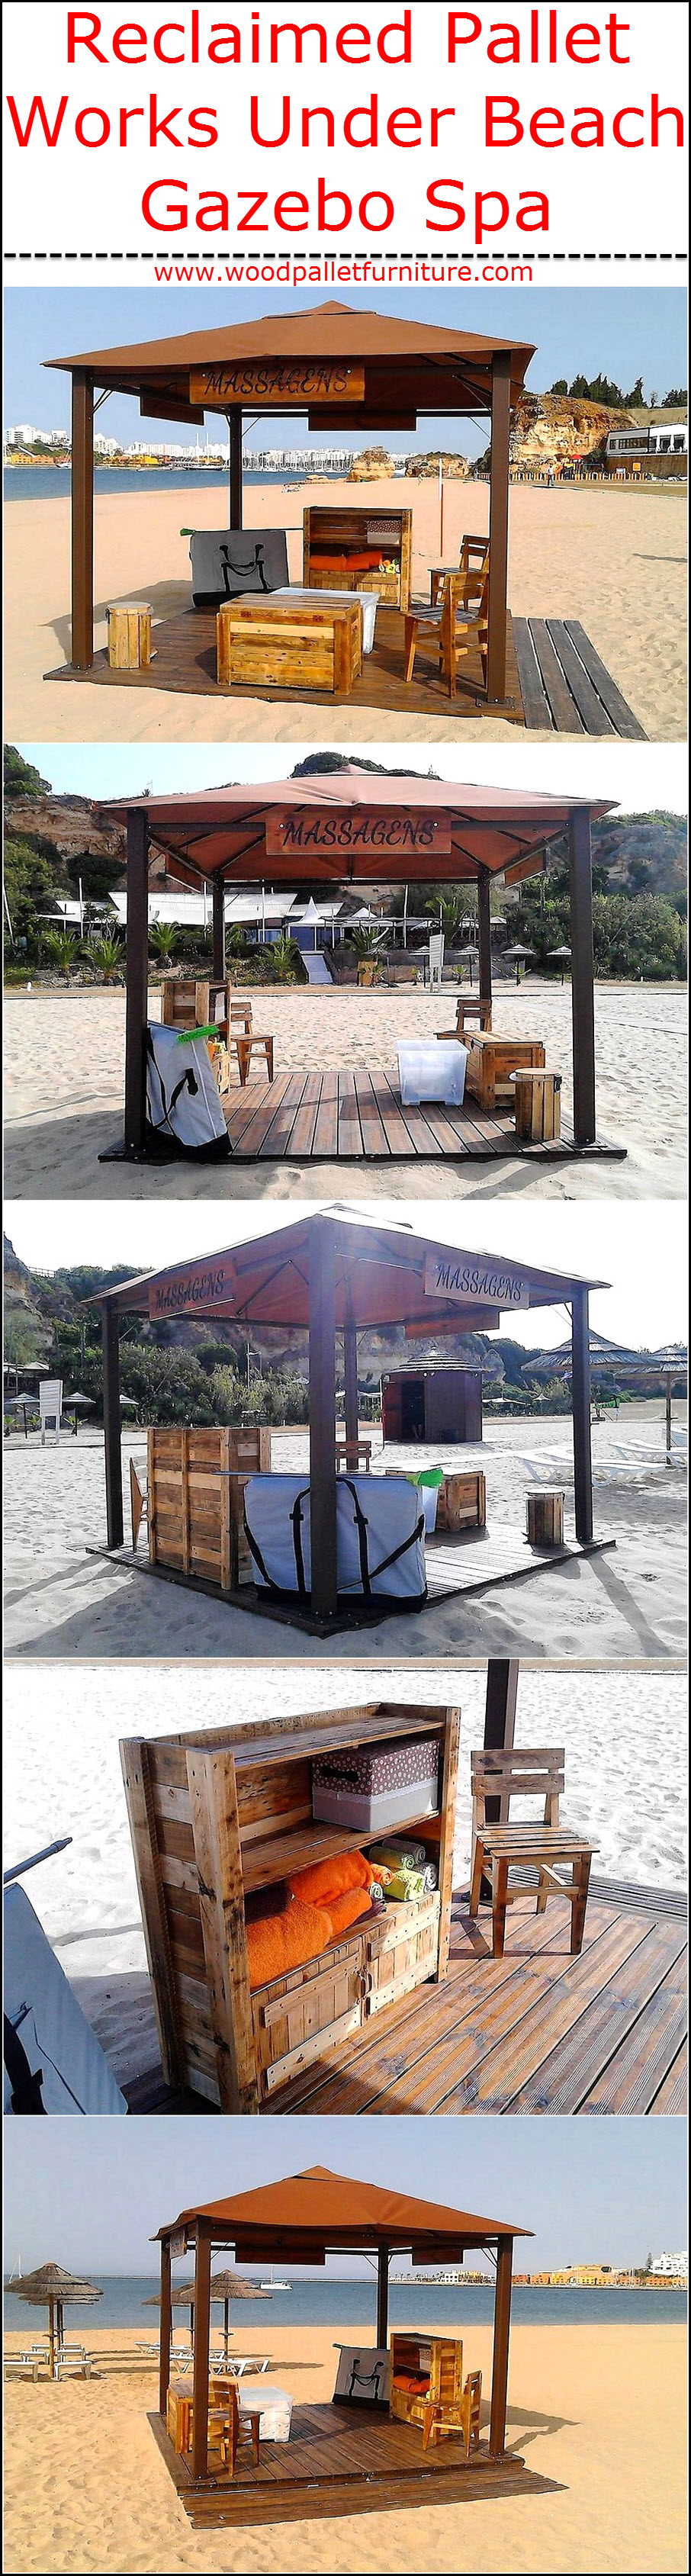 reclaimed-pallet-works-under-beach-gazebo-spa